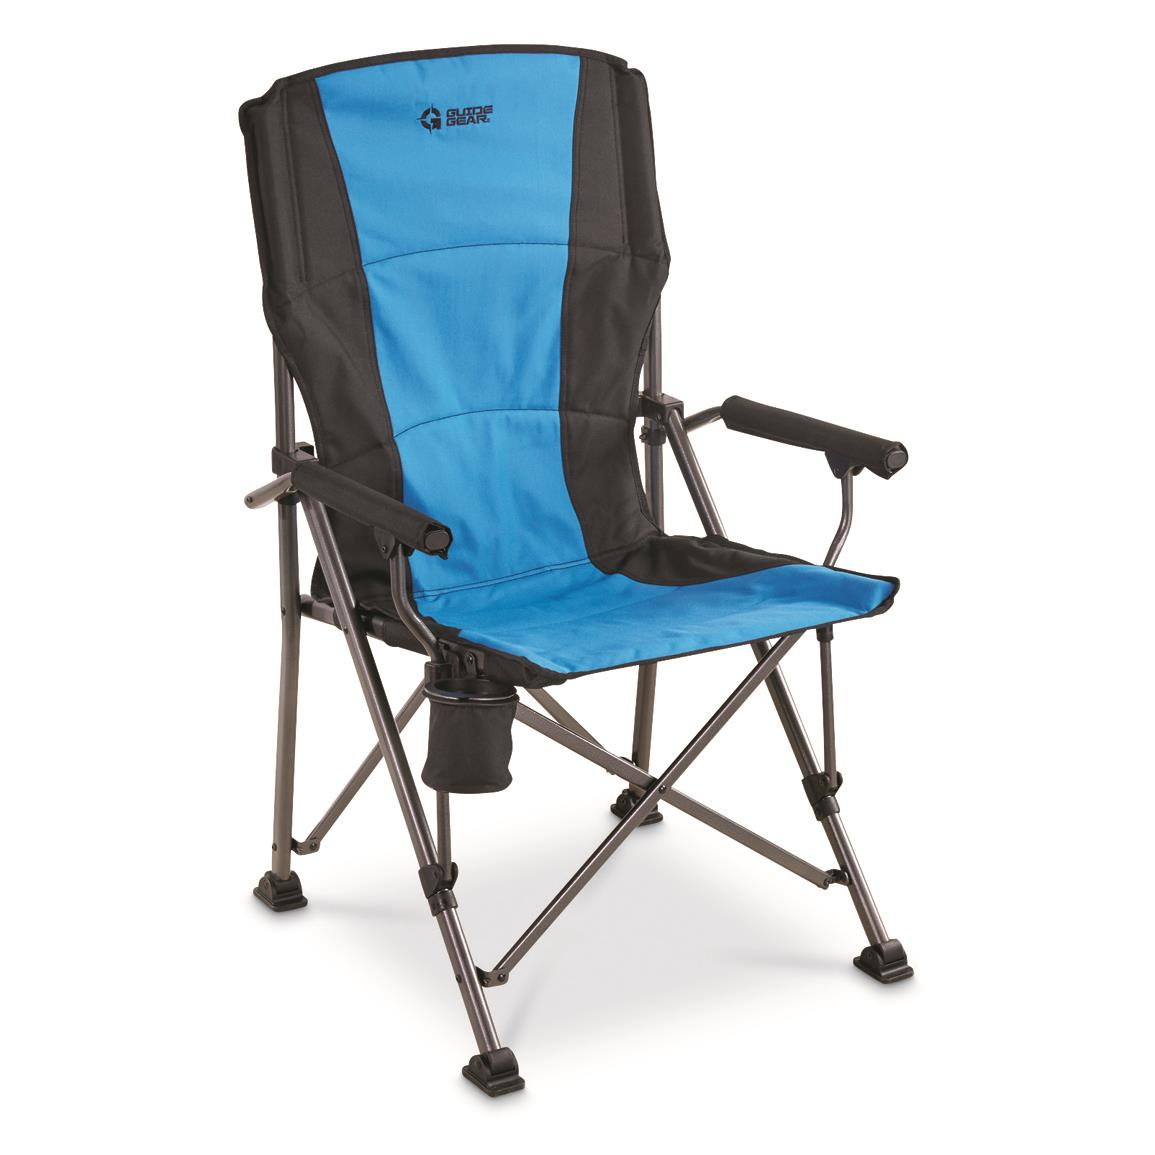 camp chairs guide gear oversized champion hard arm camp chair, blue DFAPWXD